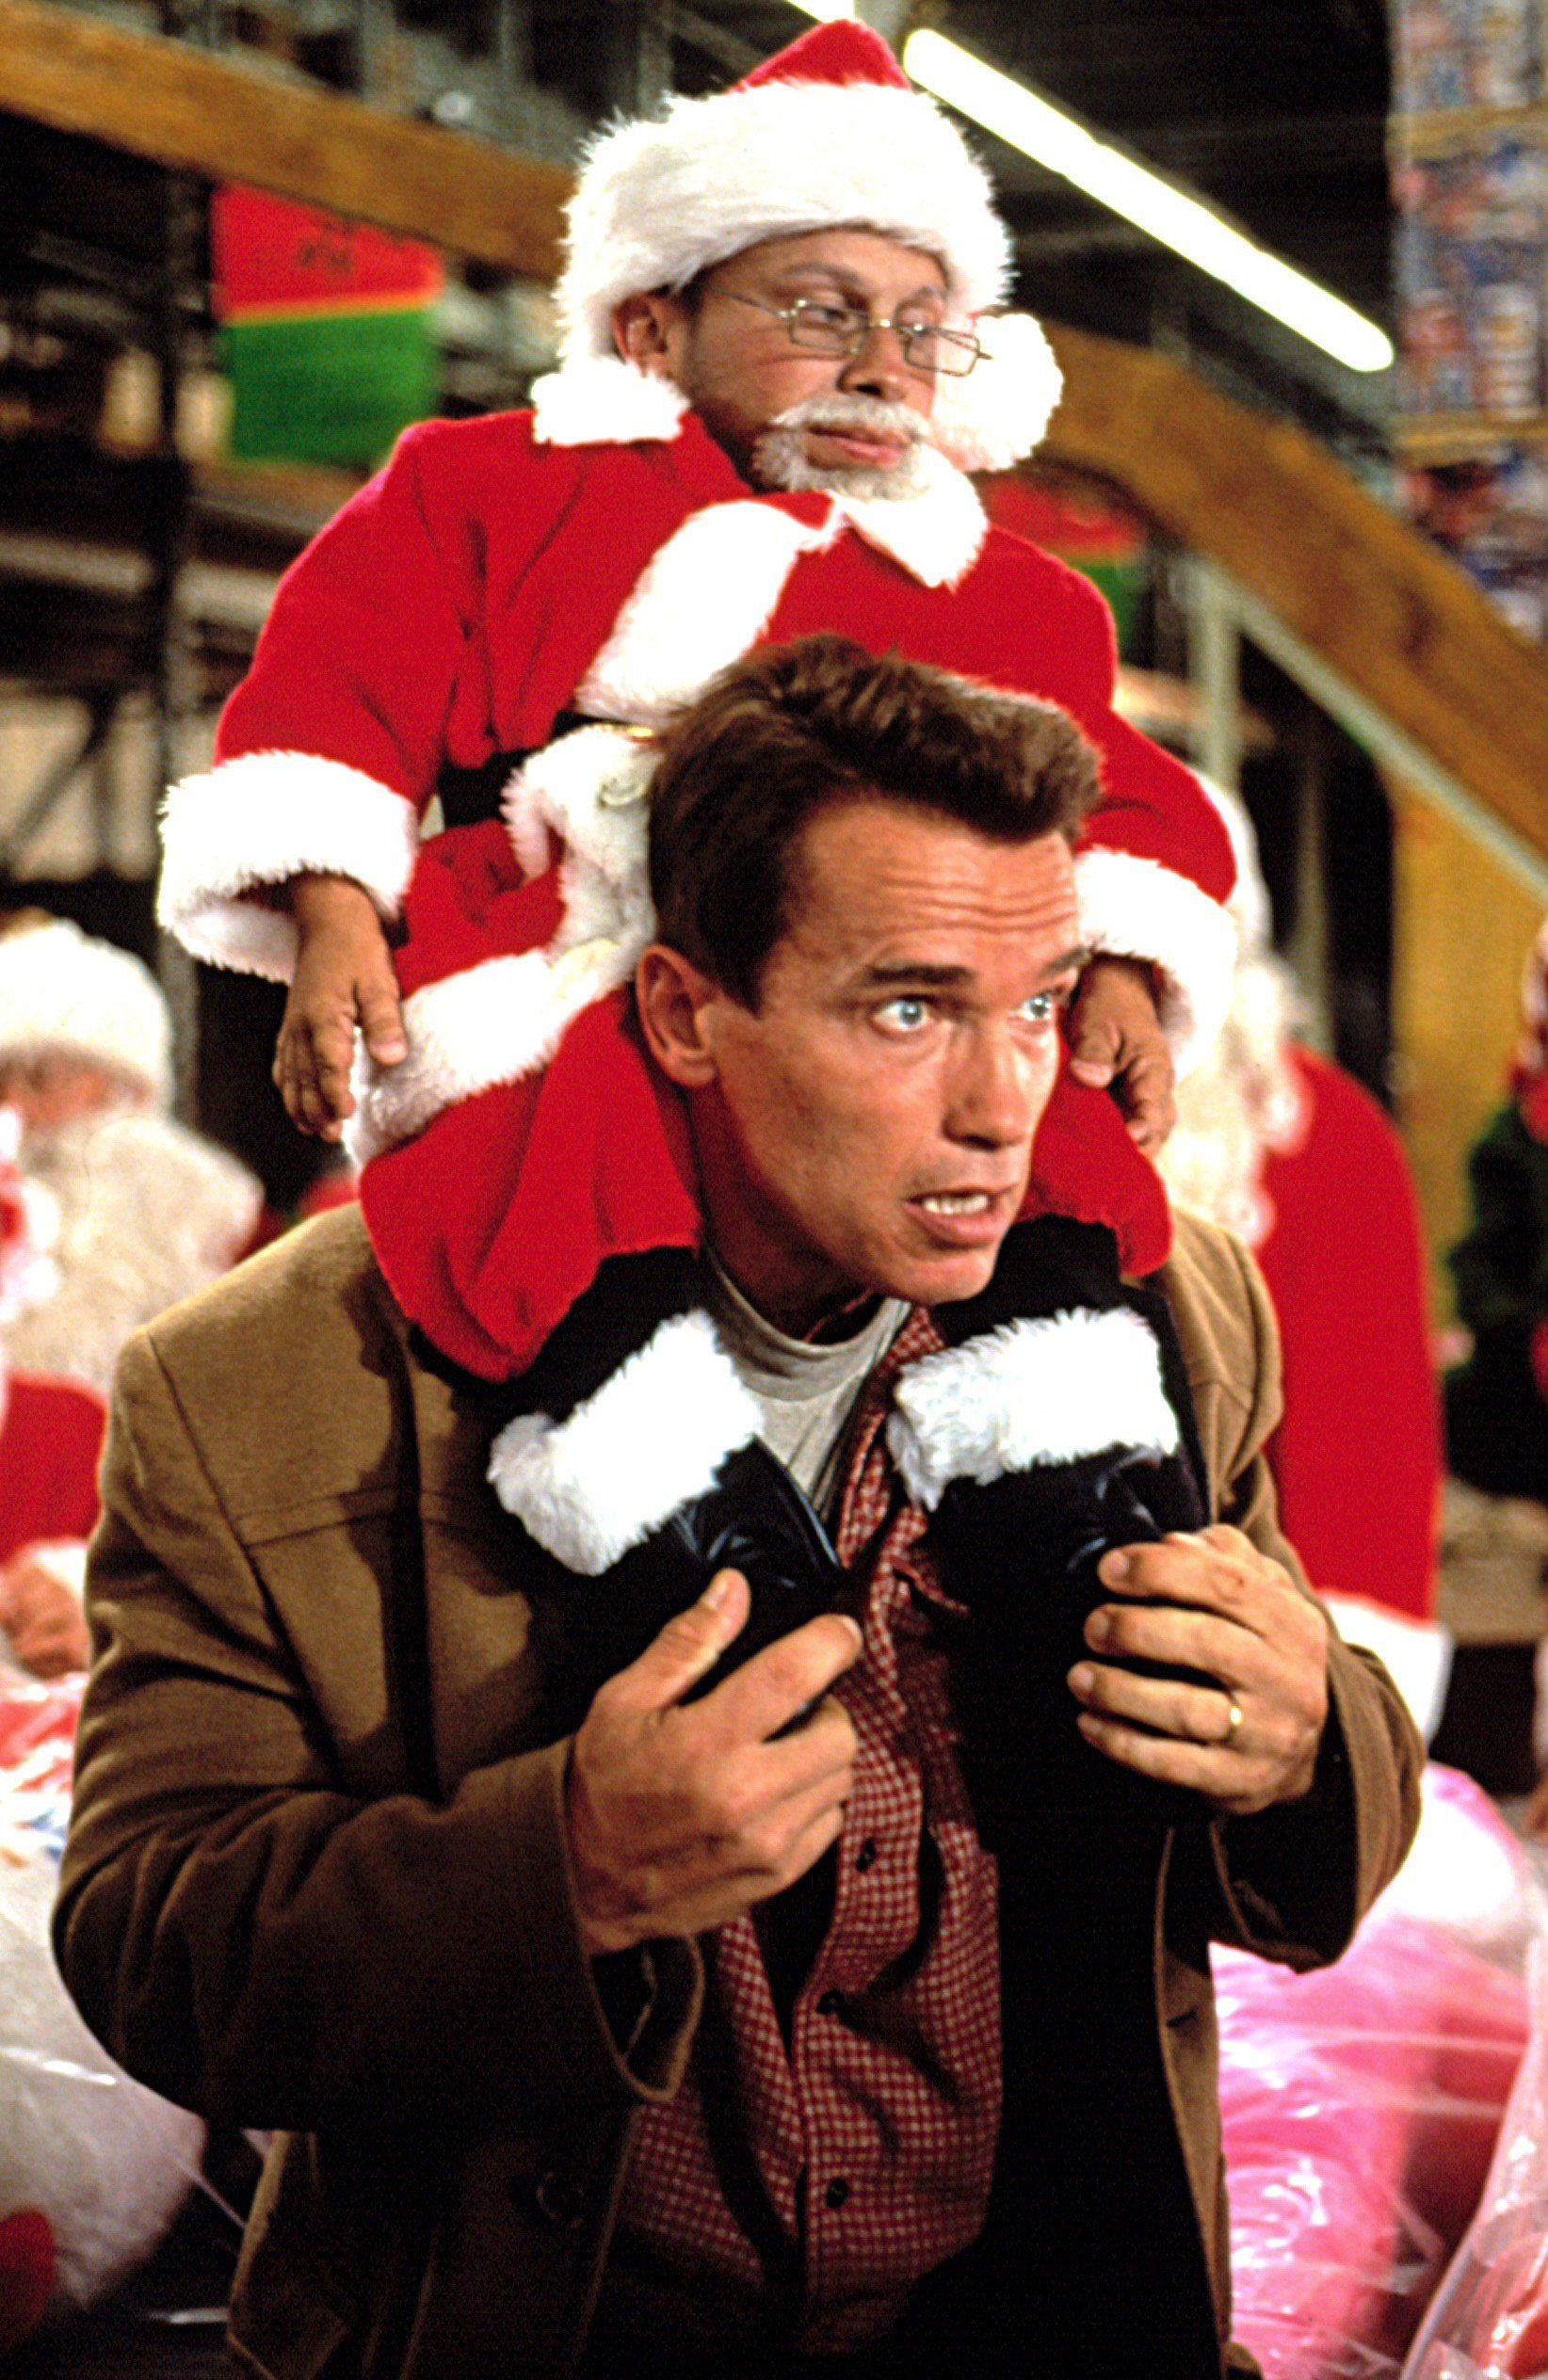 Jingle all the way movie still 1996 top to bottom